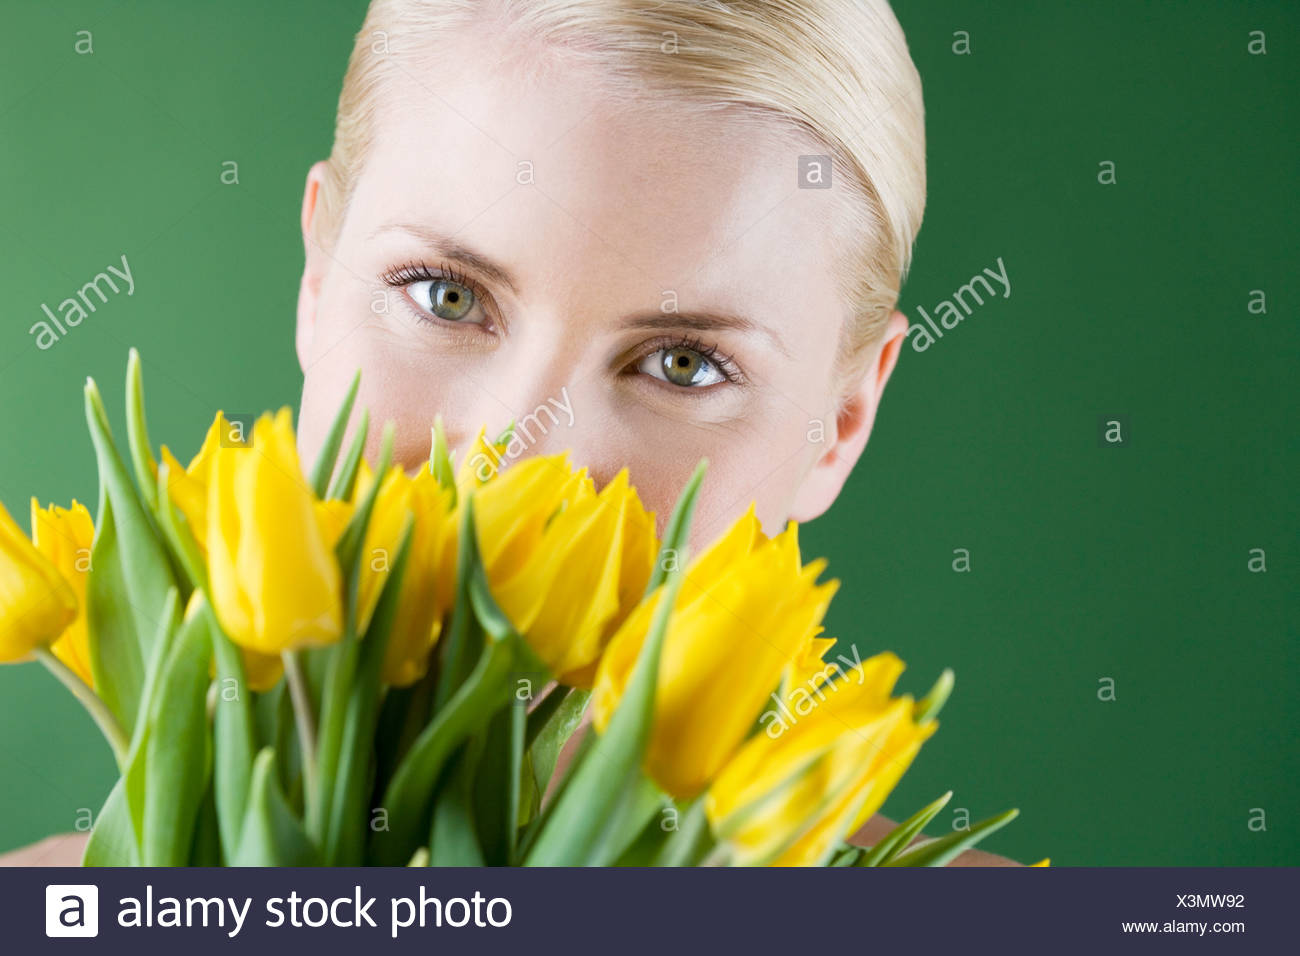 A young blonde woman holding a bunch of yellow tulips - Stock Image